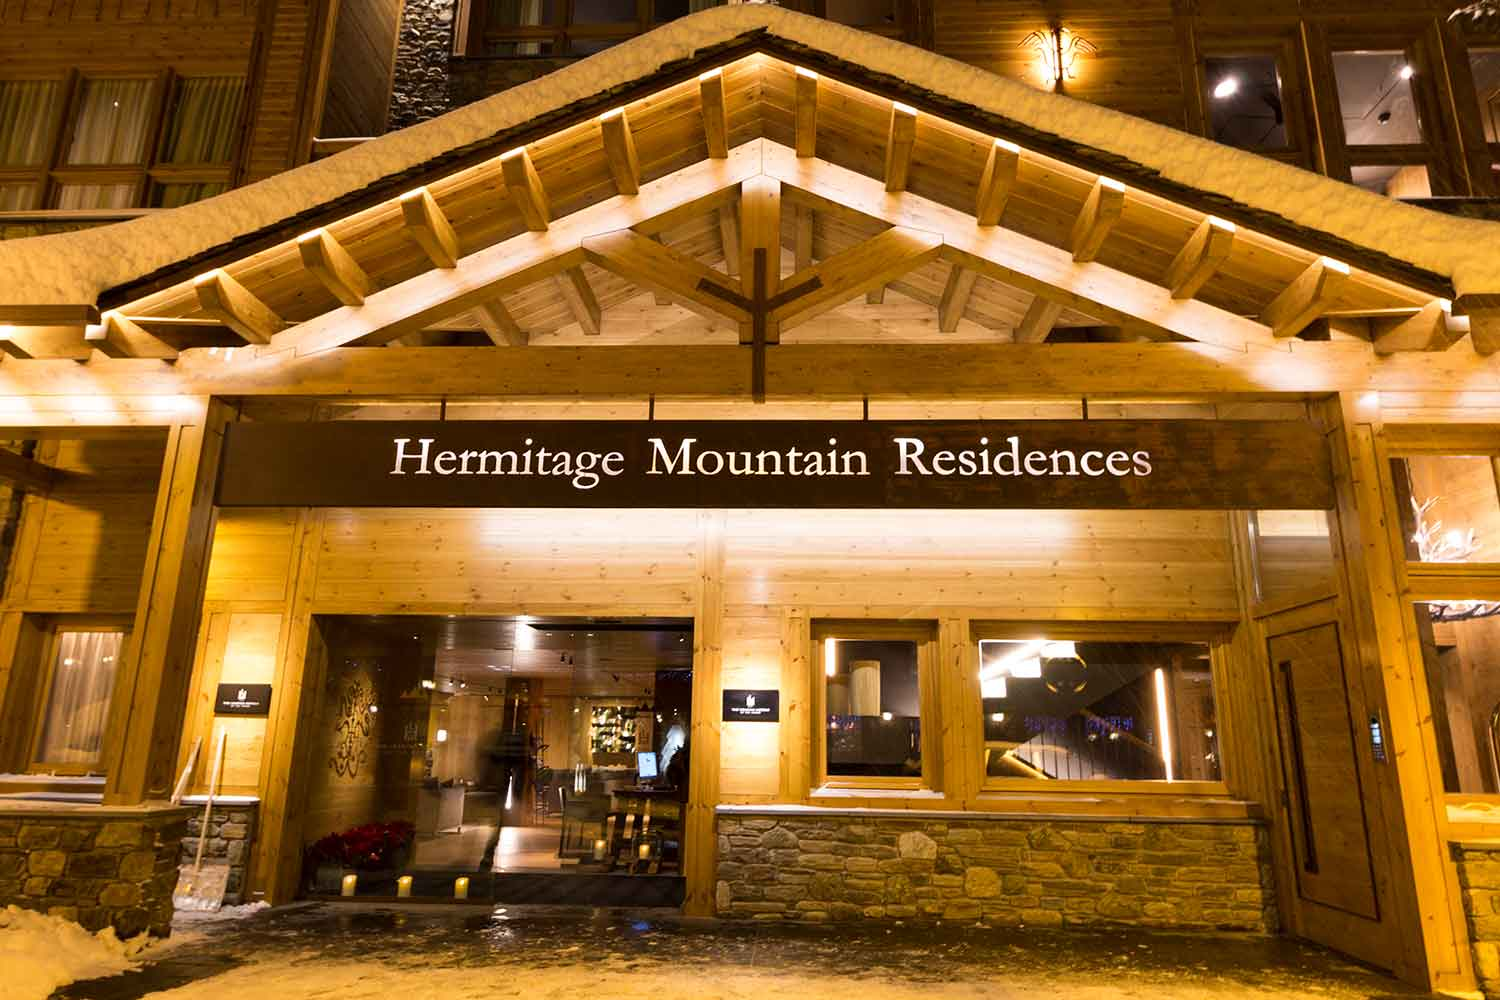 Hermitage Mountain Residences | Luxury holidays at the foot of the slopes of Grandvalira